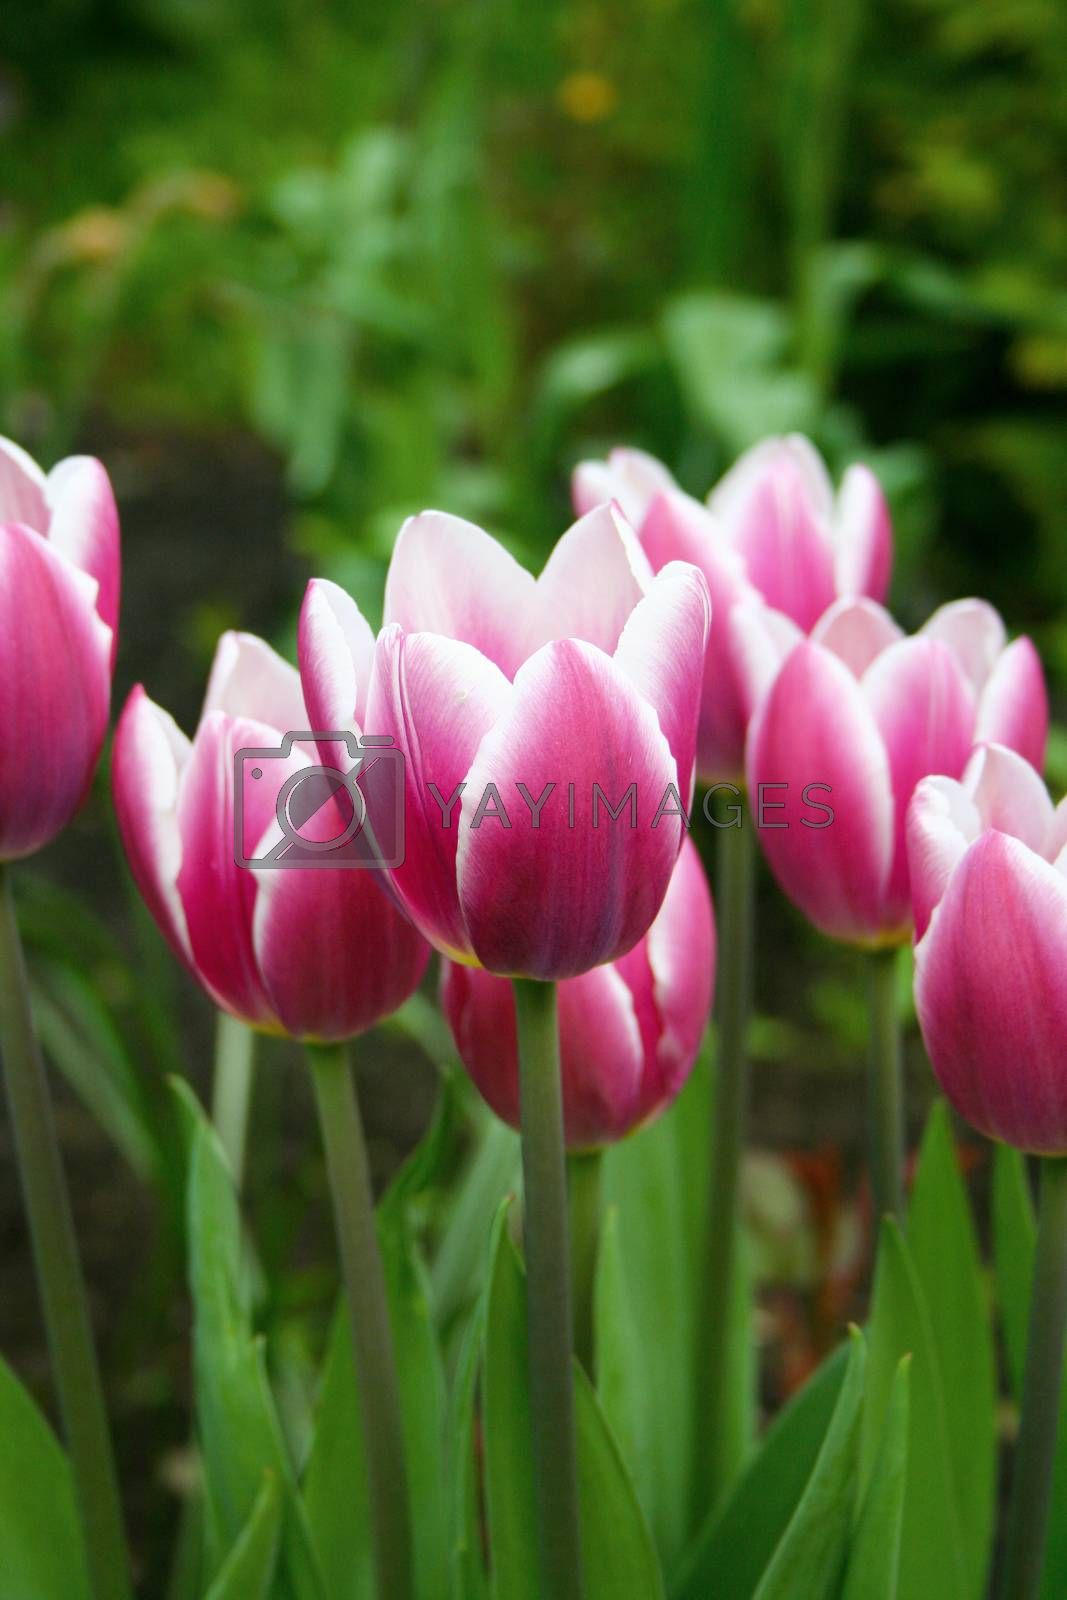 Closeup view of pink garden tulips with defocused bokeh background